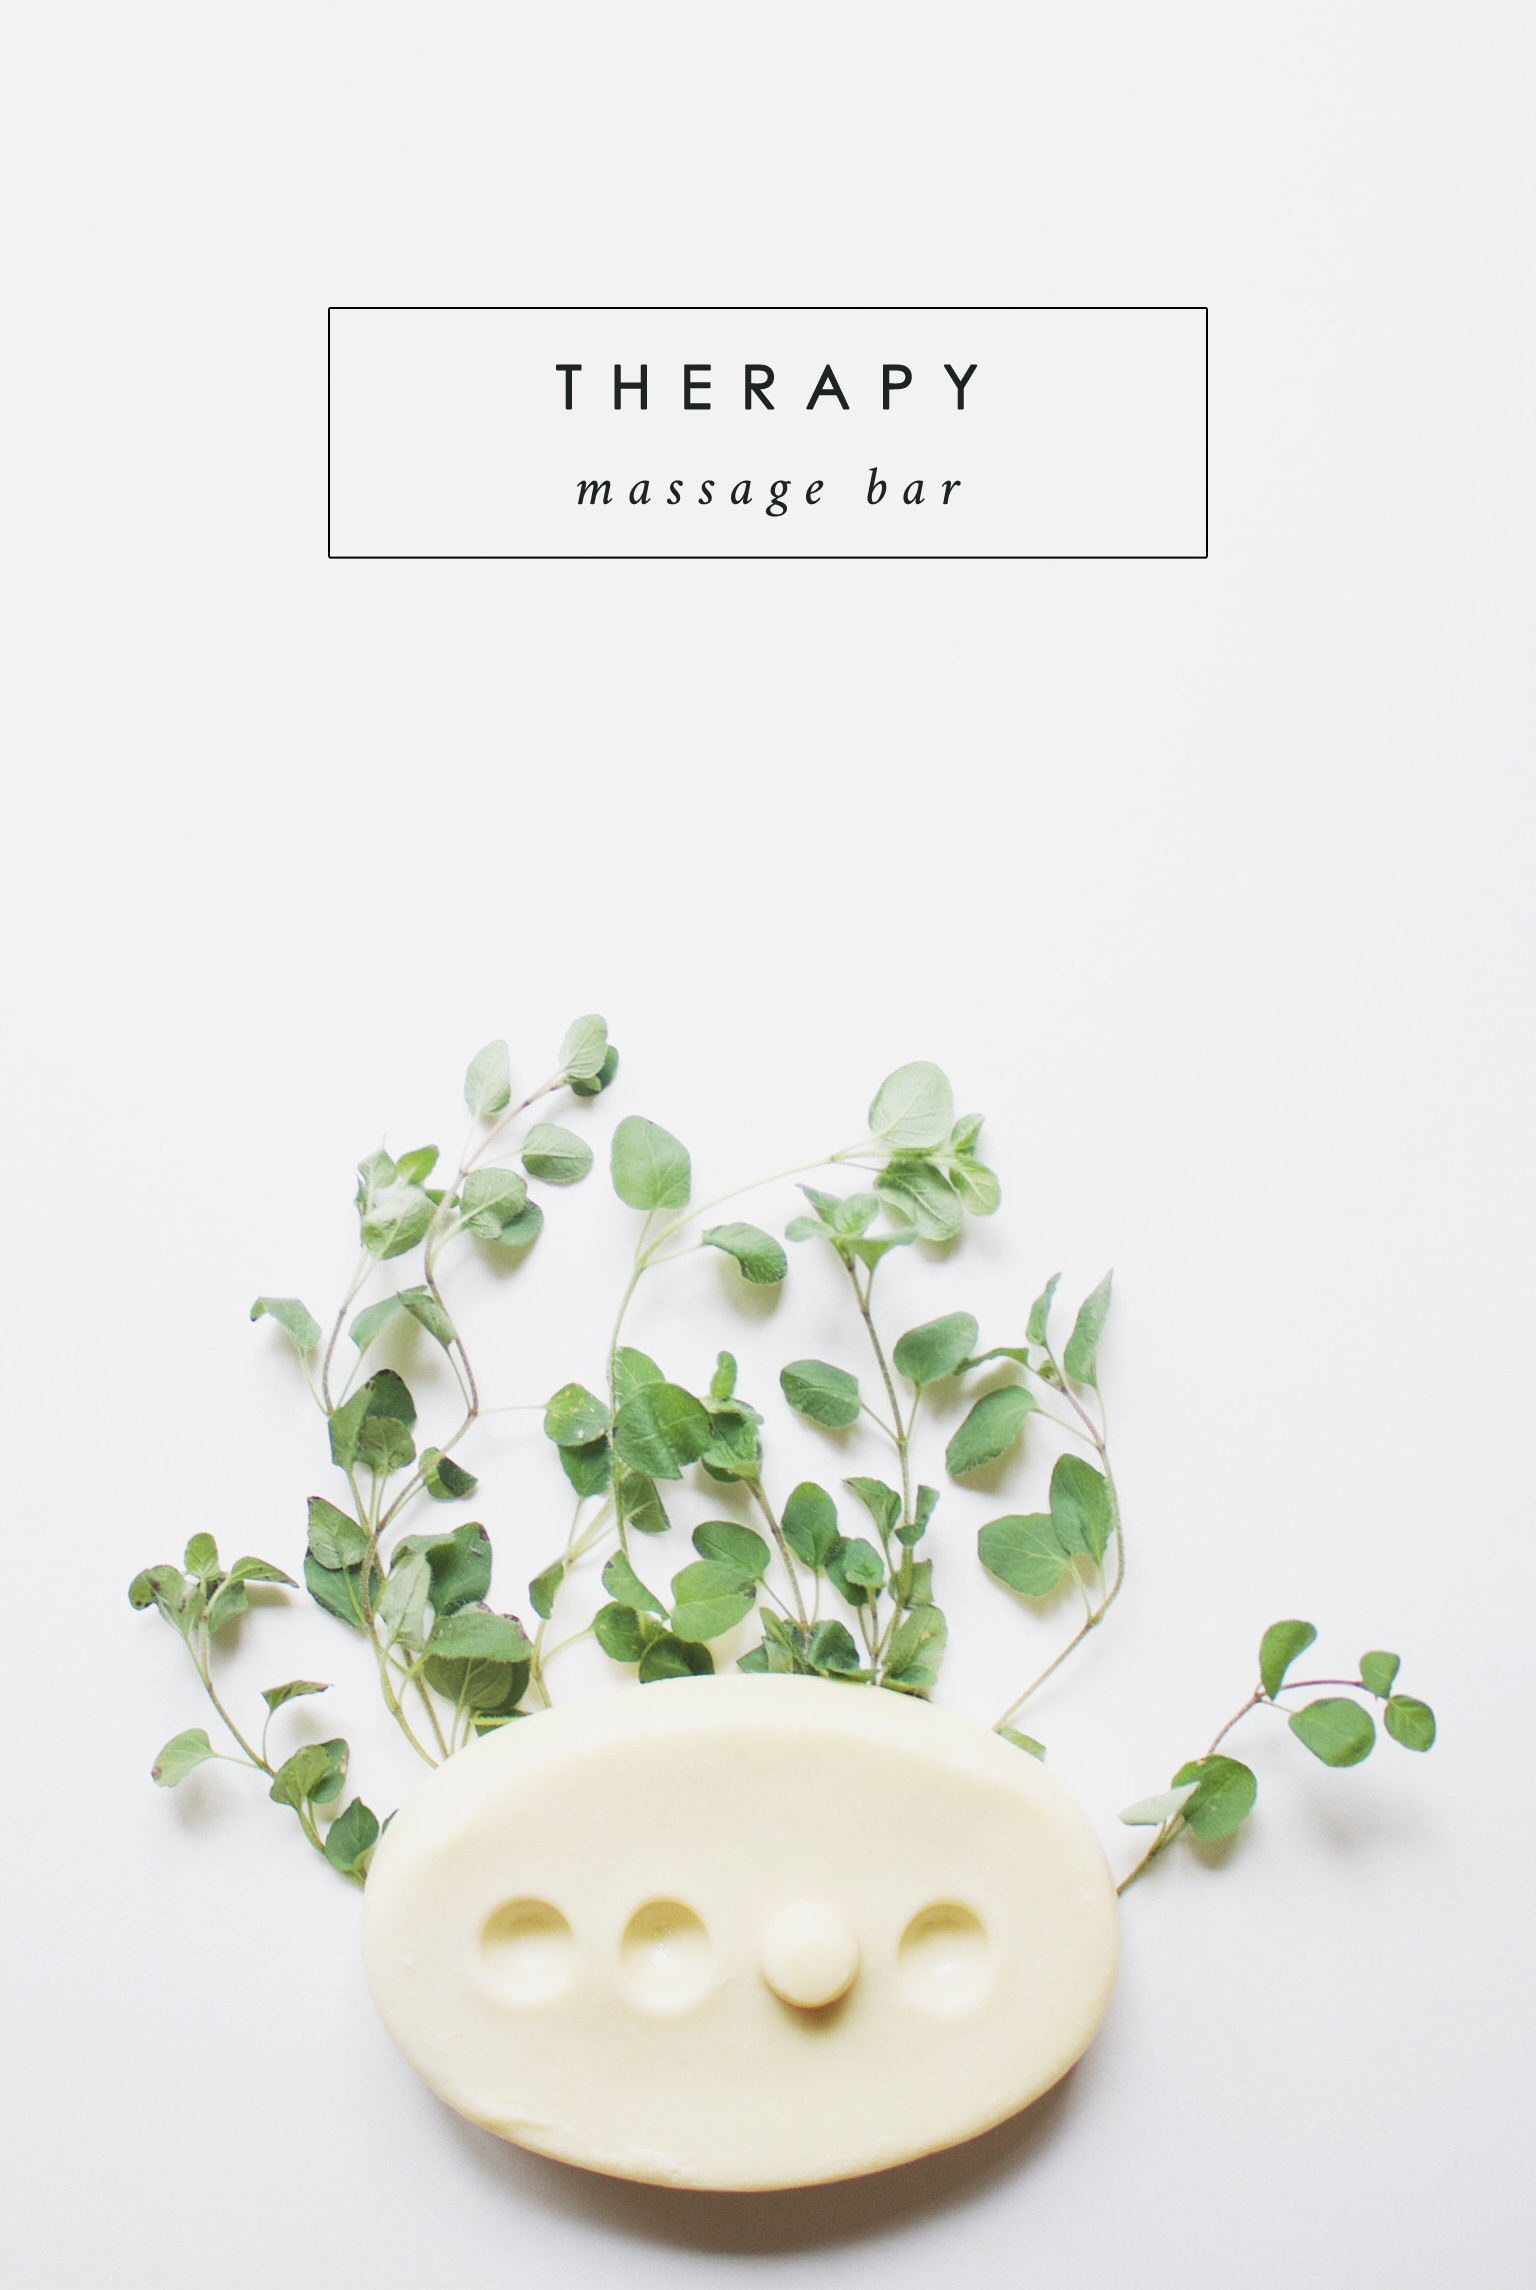 Therapy Massage Bar, Lush, Haul, Beauty, Bramble and Thorn